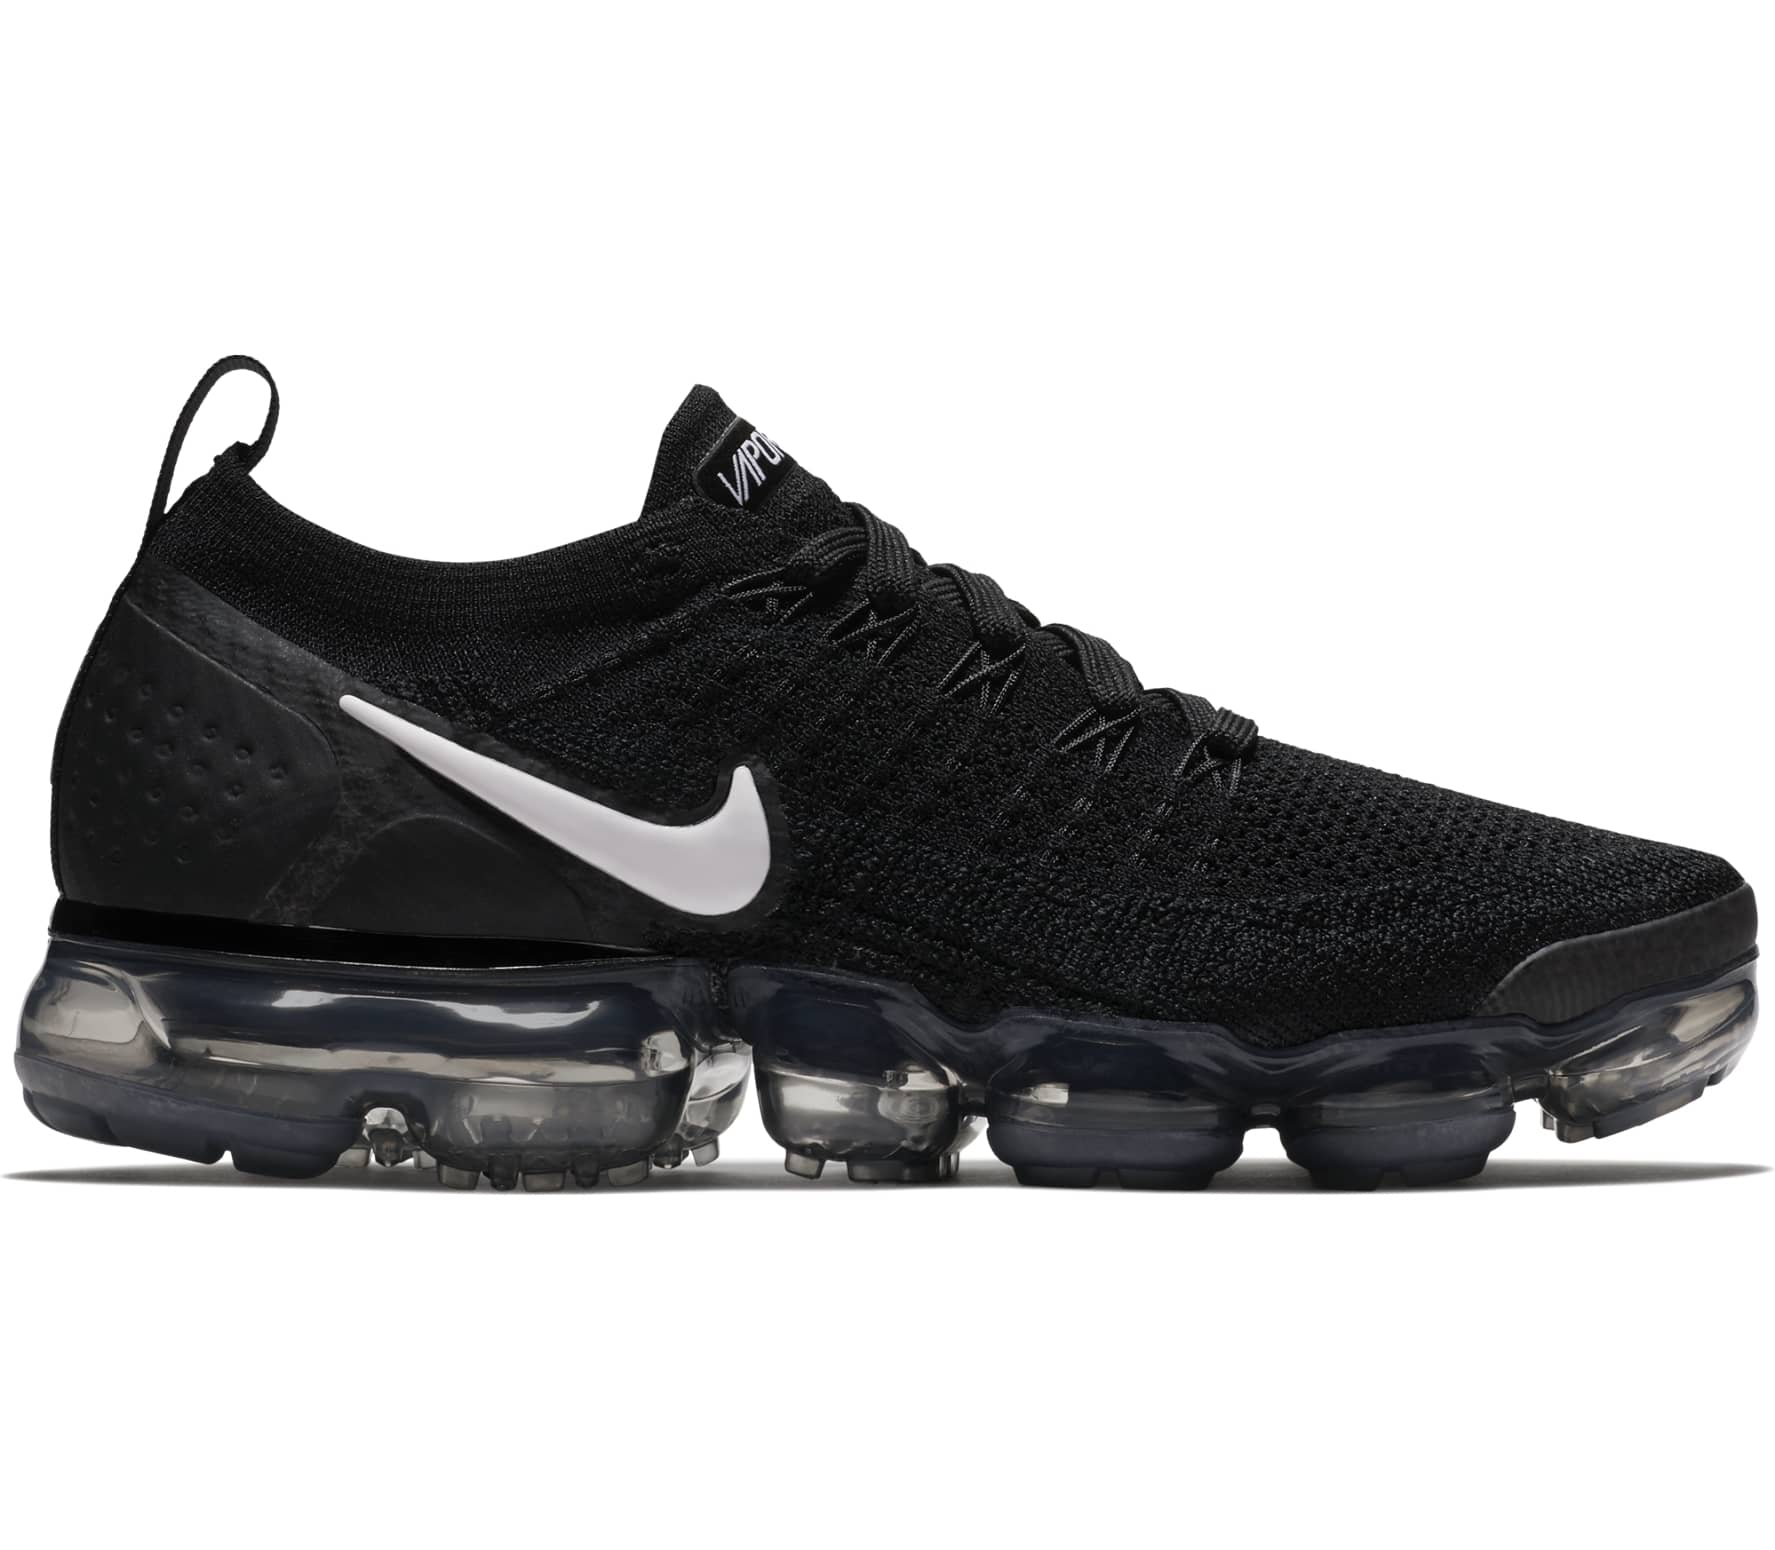 Nike Air Vapormax Flyknit 2 Womens Running Shoes Black Buy It All White Premium